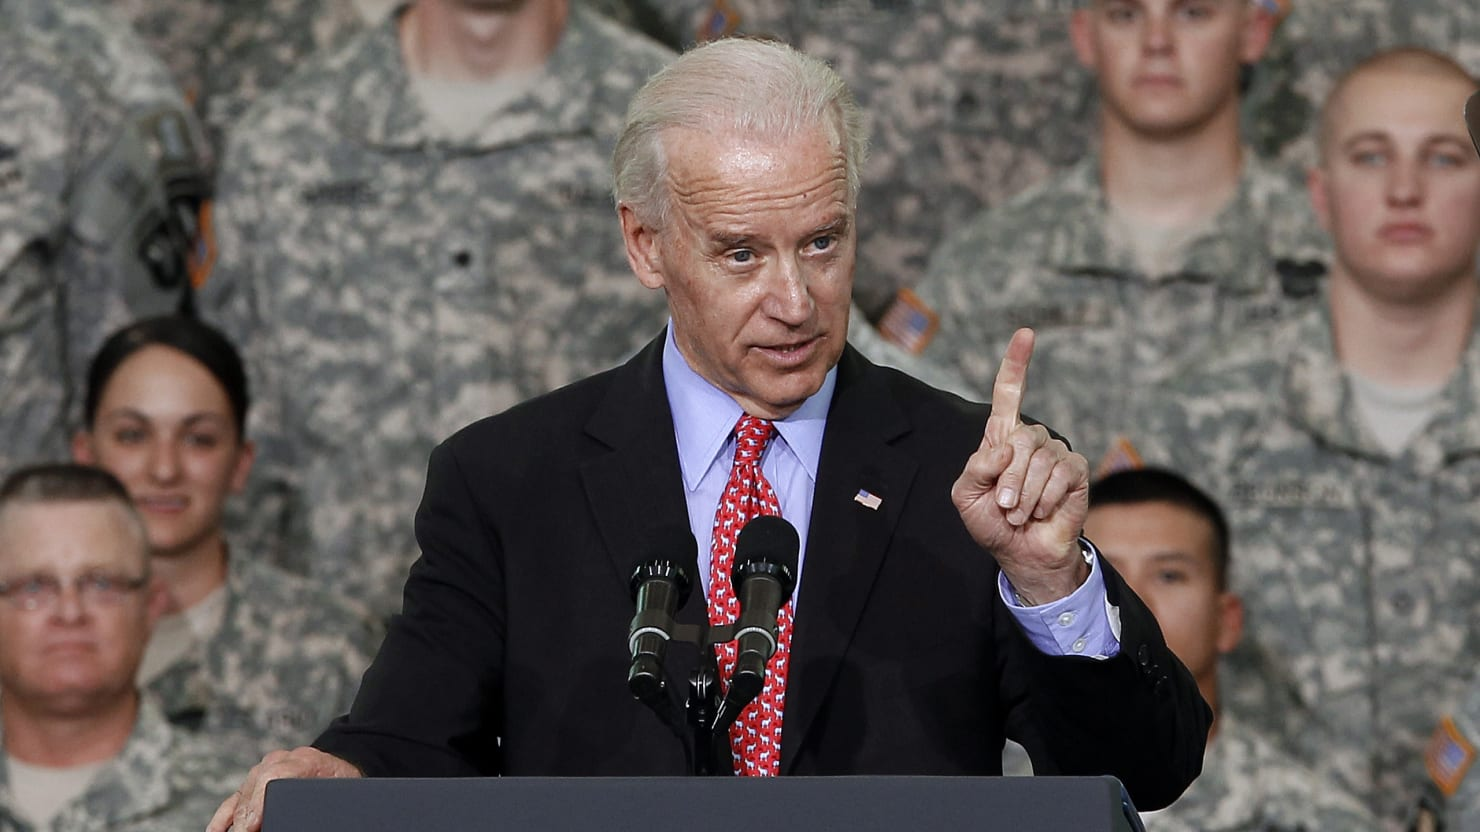 How Biden's Win on Afghanistan Policy Has Shaped Obama's Arab Approach